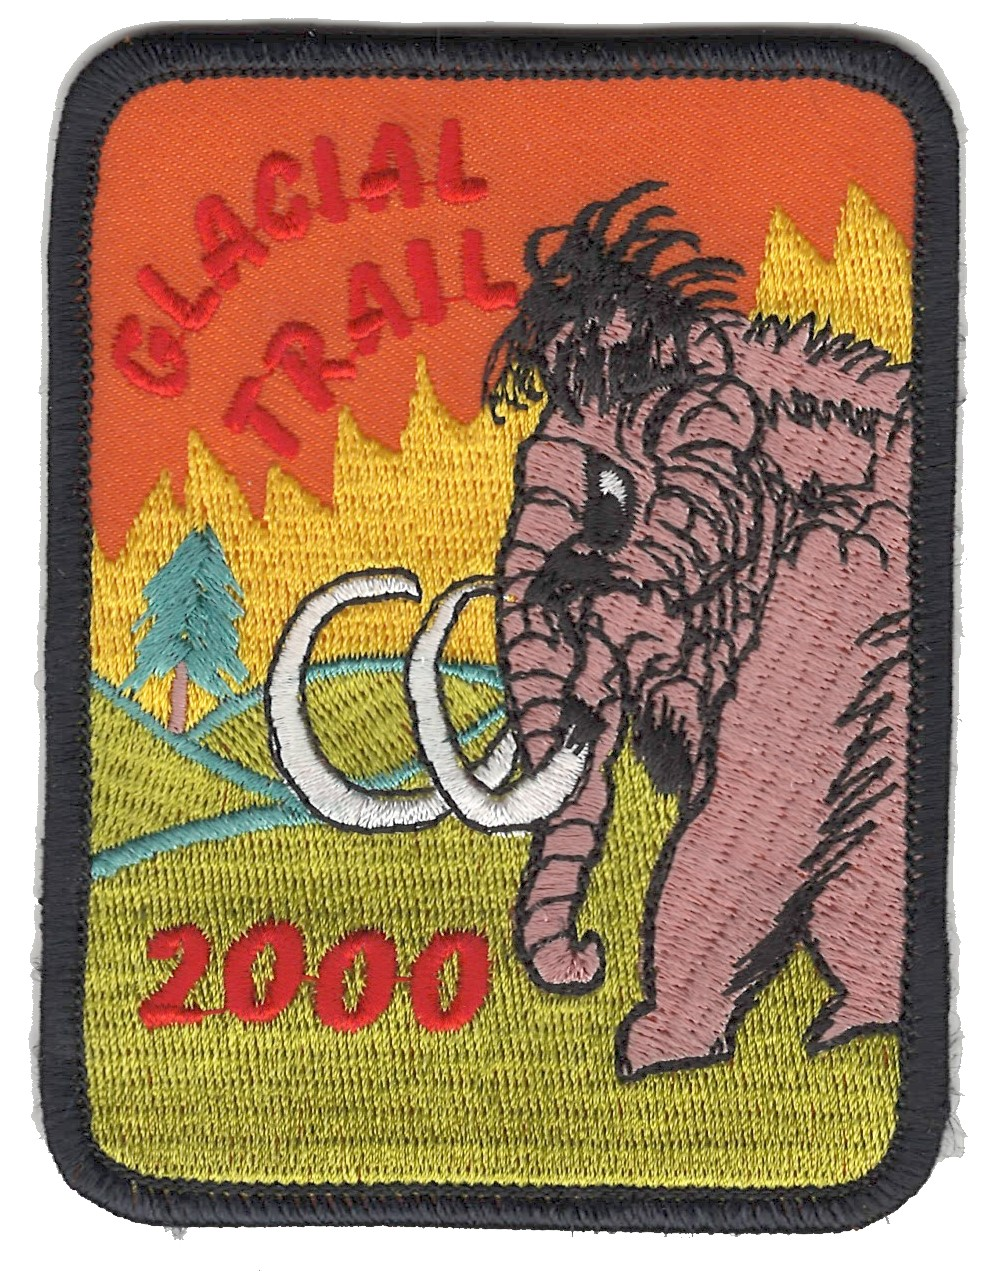 Badger Trails Glacial Trail Hike Patch 2000